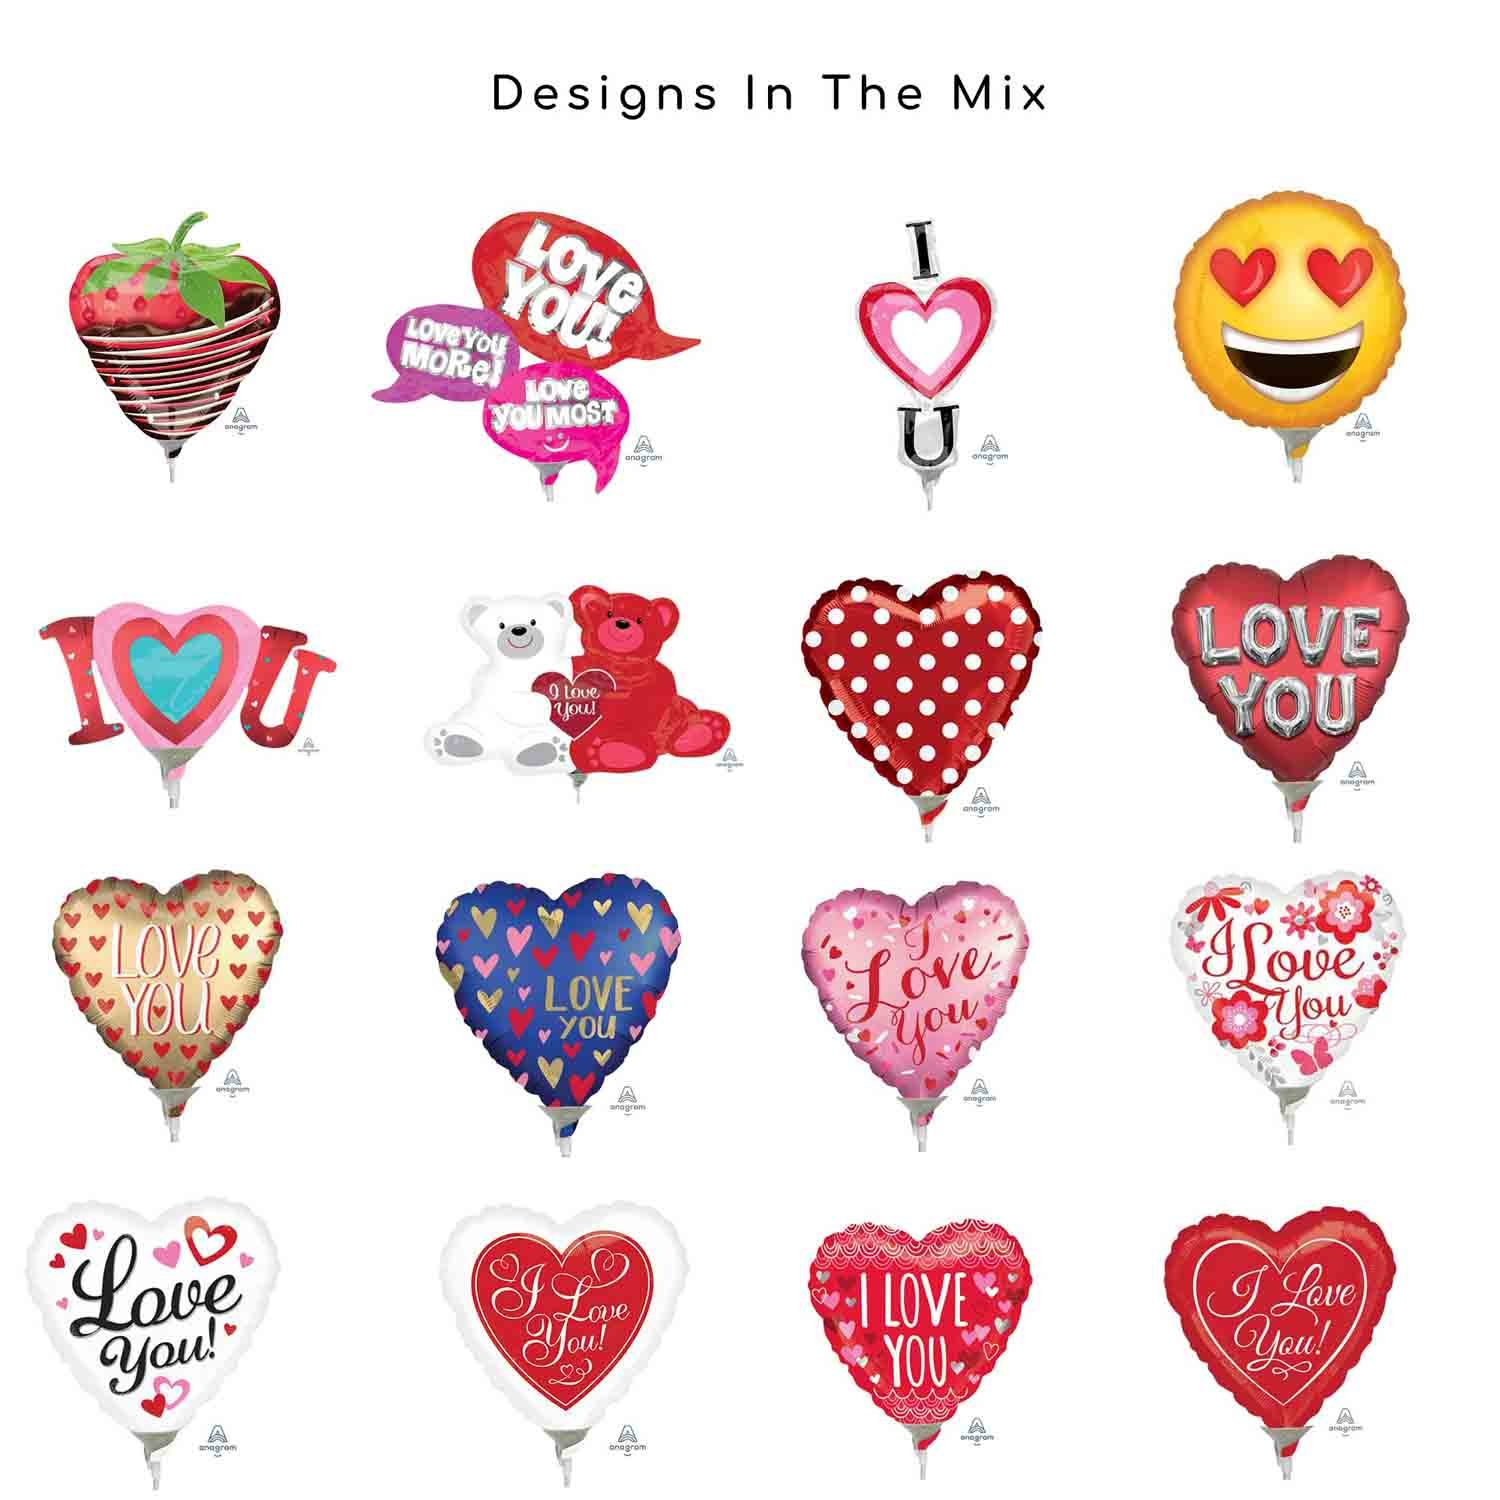 9in/23cm & Mini Shape Love Foil Balloon Mix Contains 20 Balloons, pre-inflated with Sticks & Cups